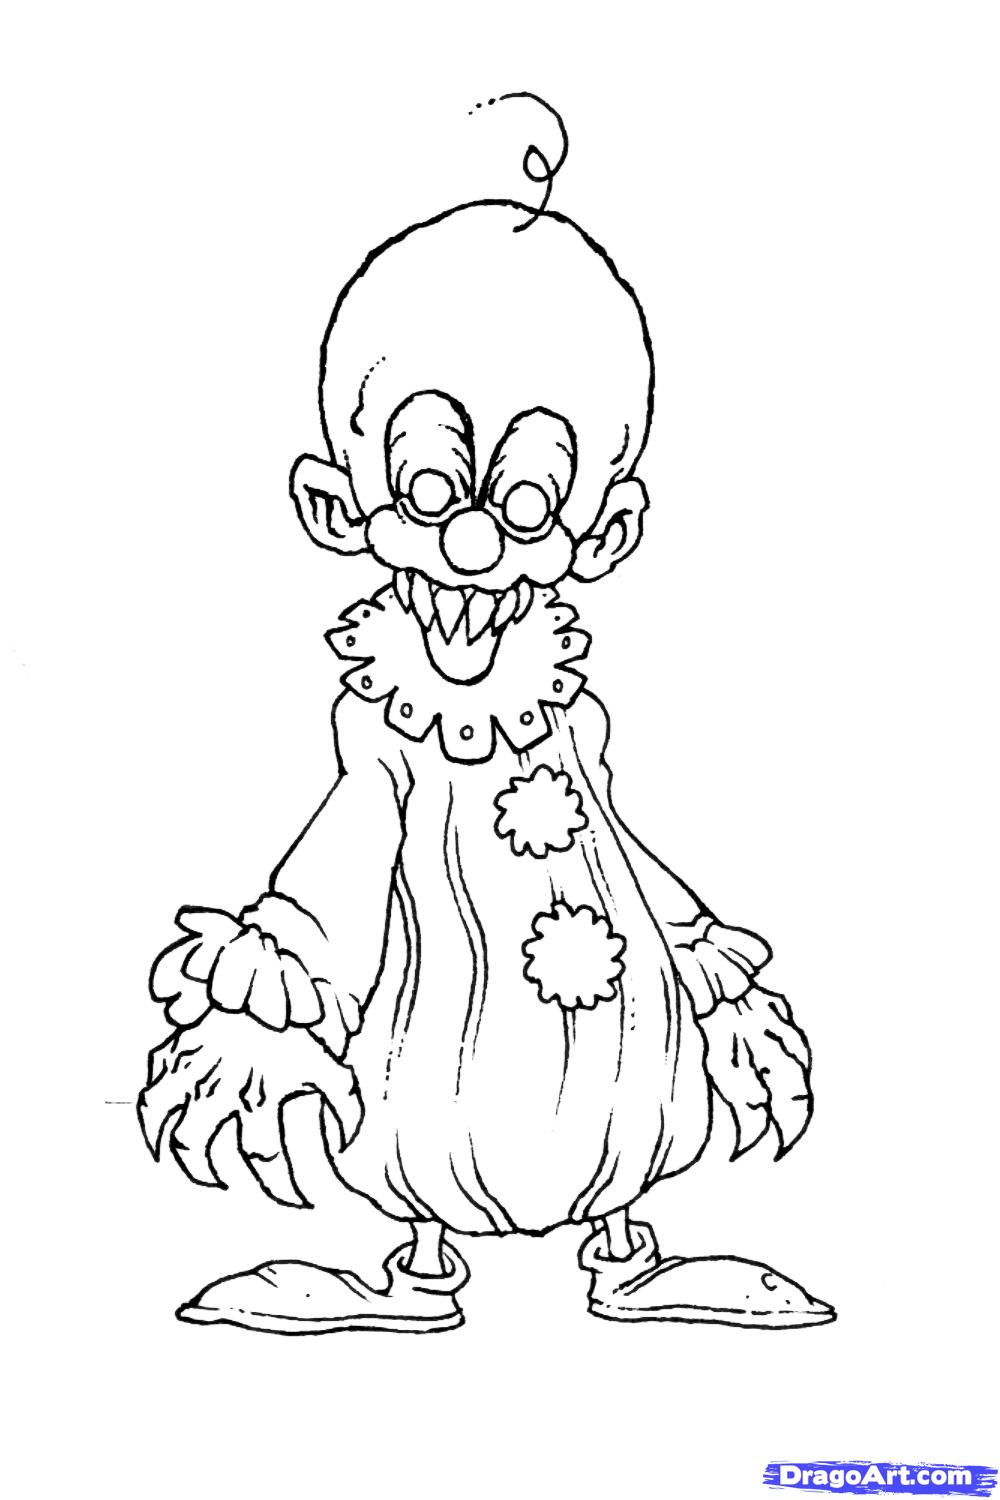 1000x1500 Coloring Pages Coloring Pages Draw A Clown Of Scary Clowns Best